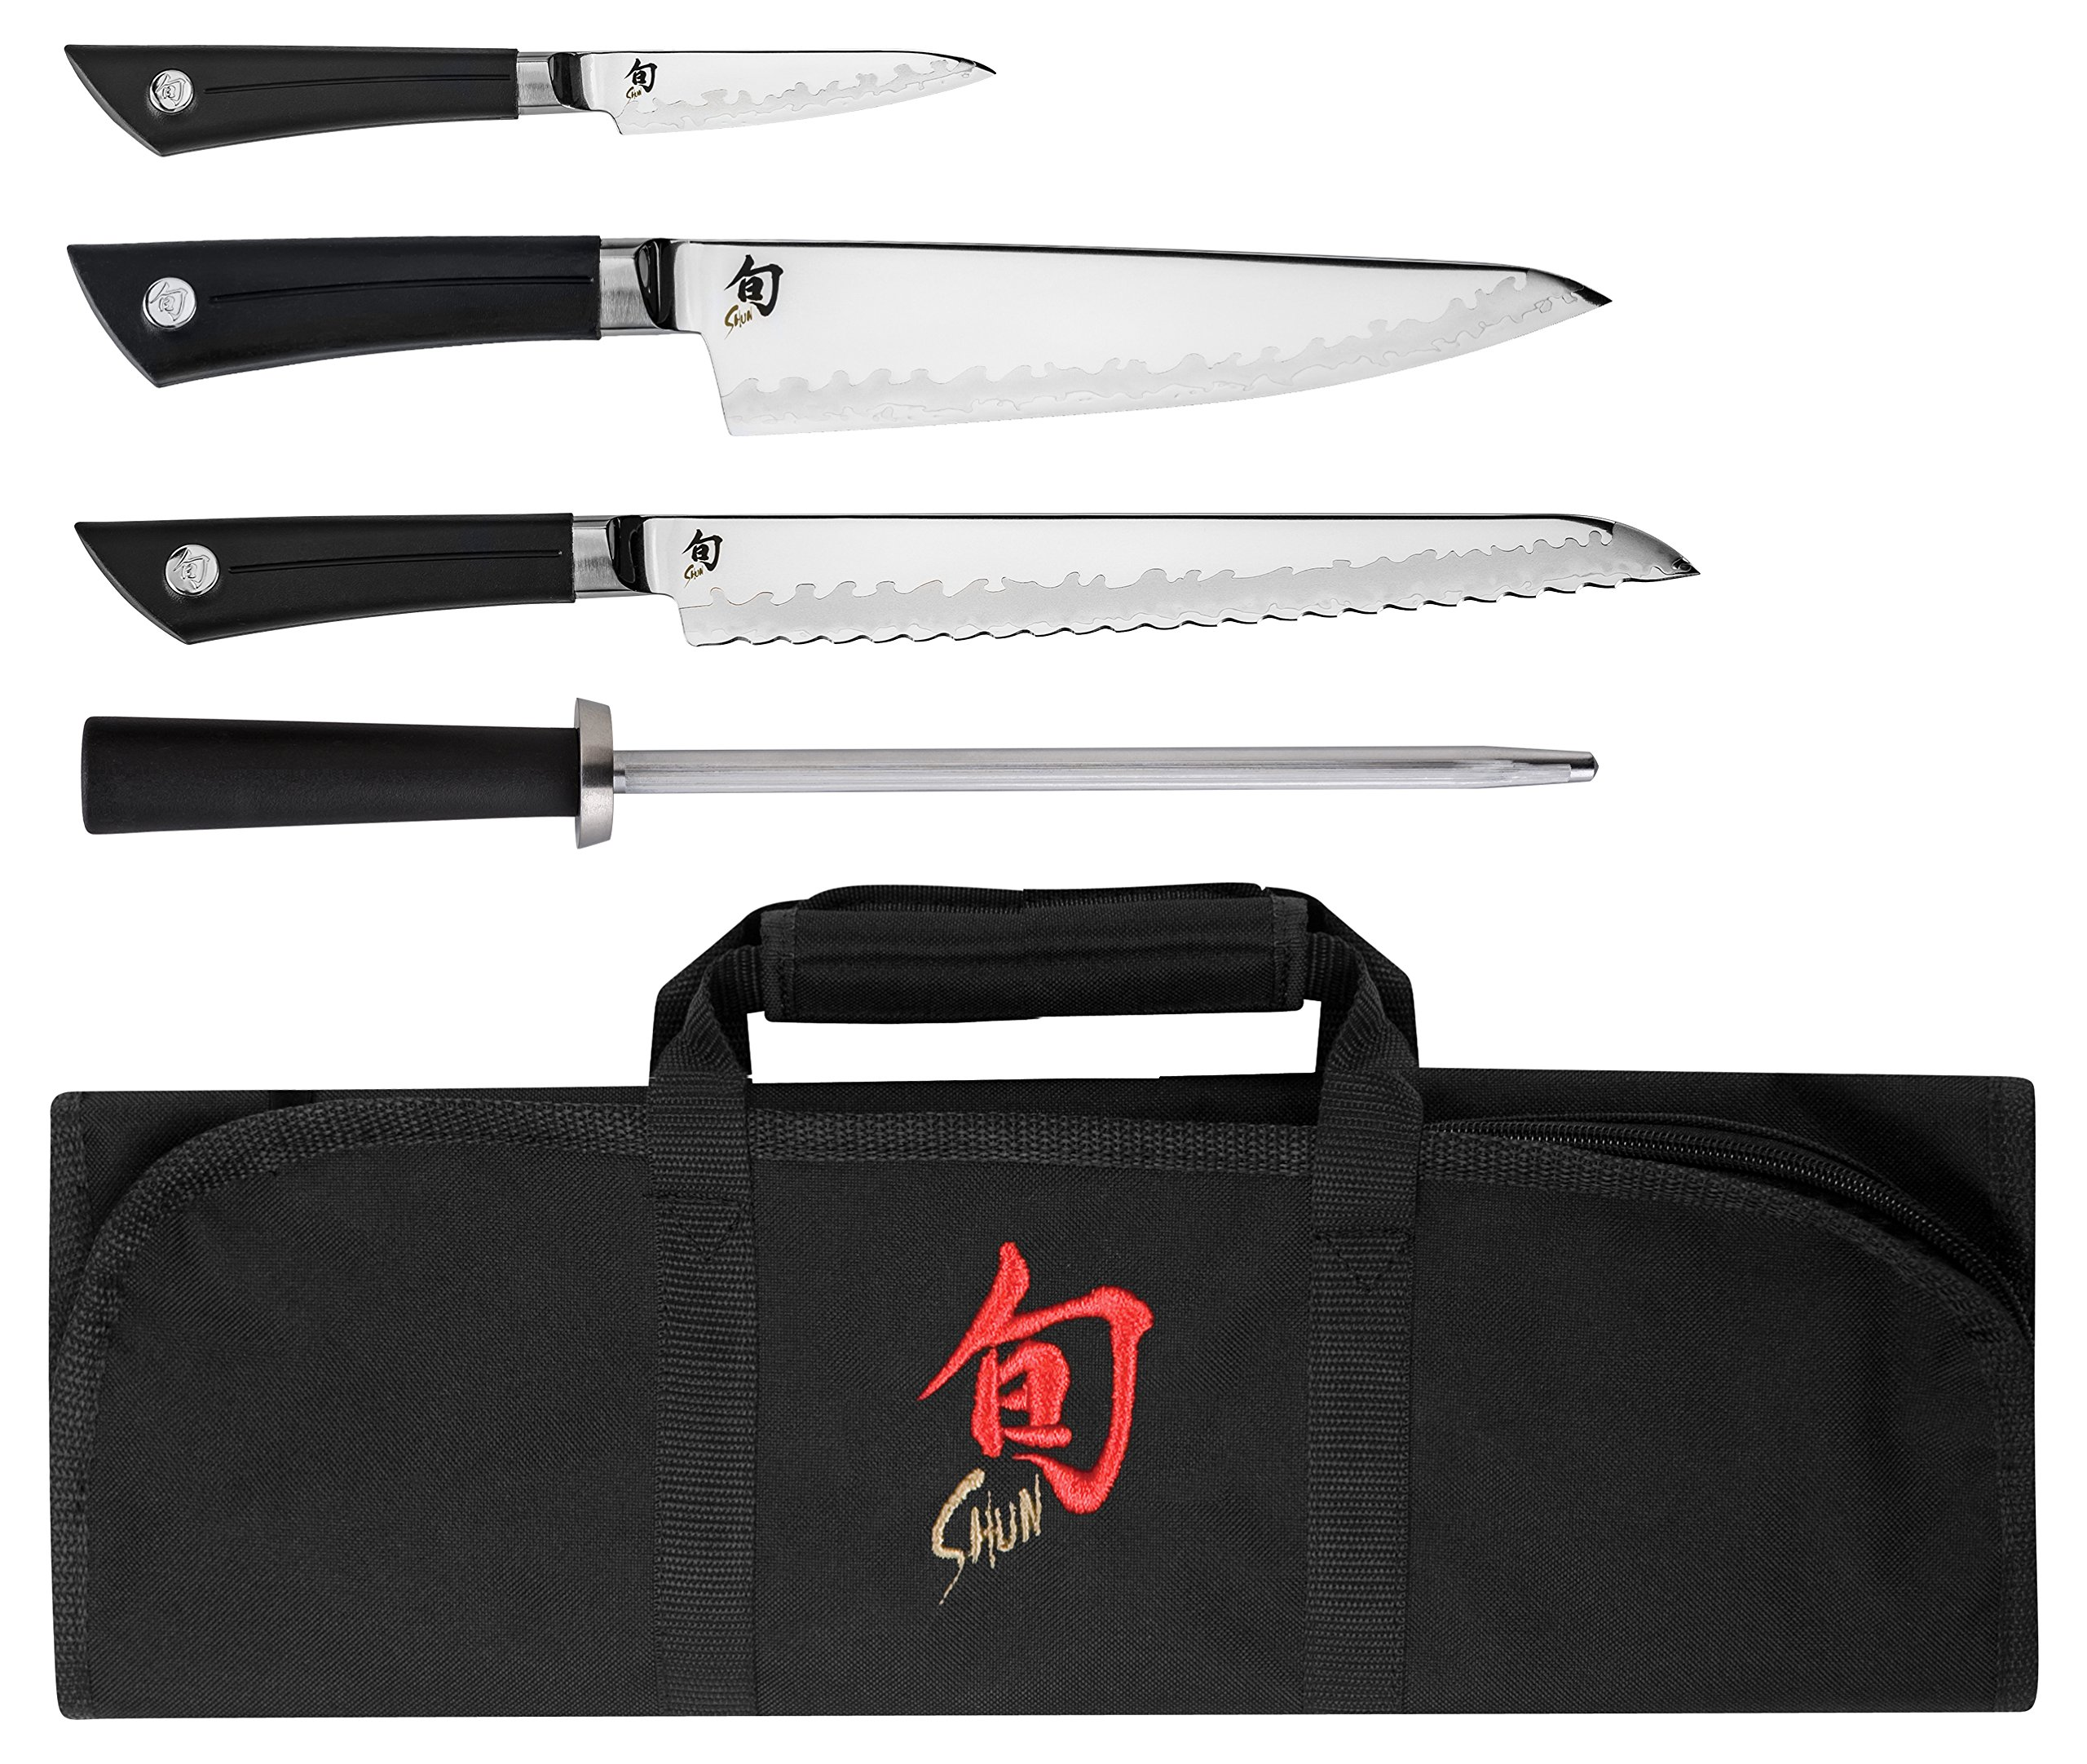 Shun VBS0499 5 Piece Sora Student Japanese Cutlery Set, Silver by Shun (Image #1)